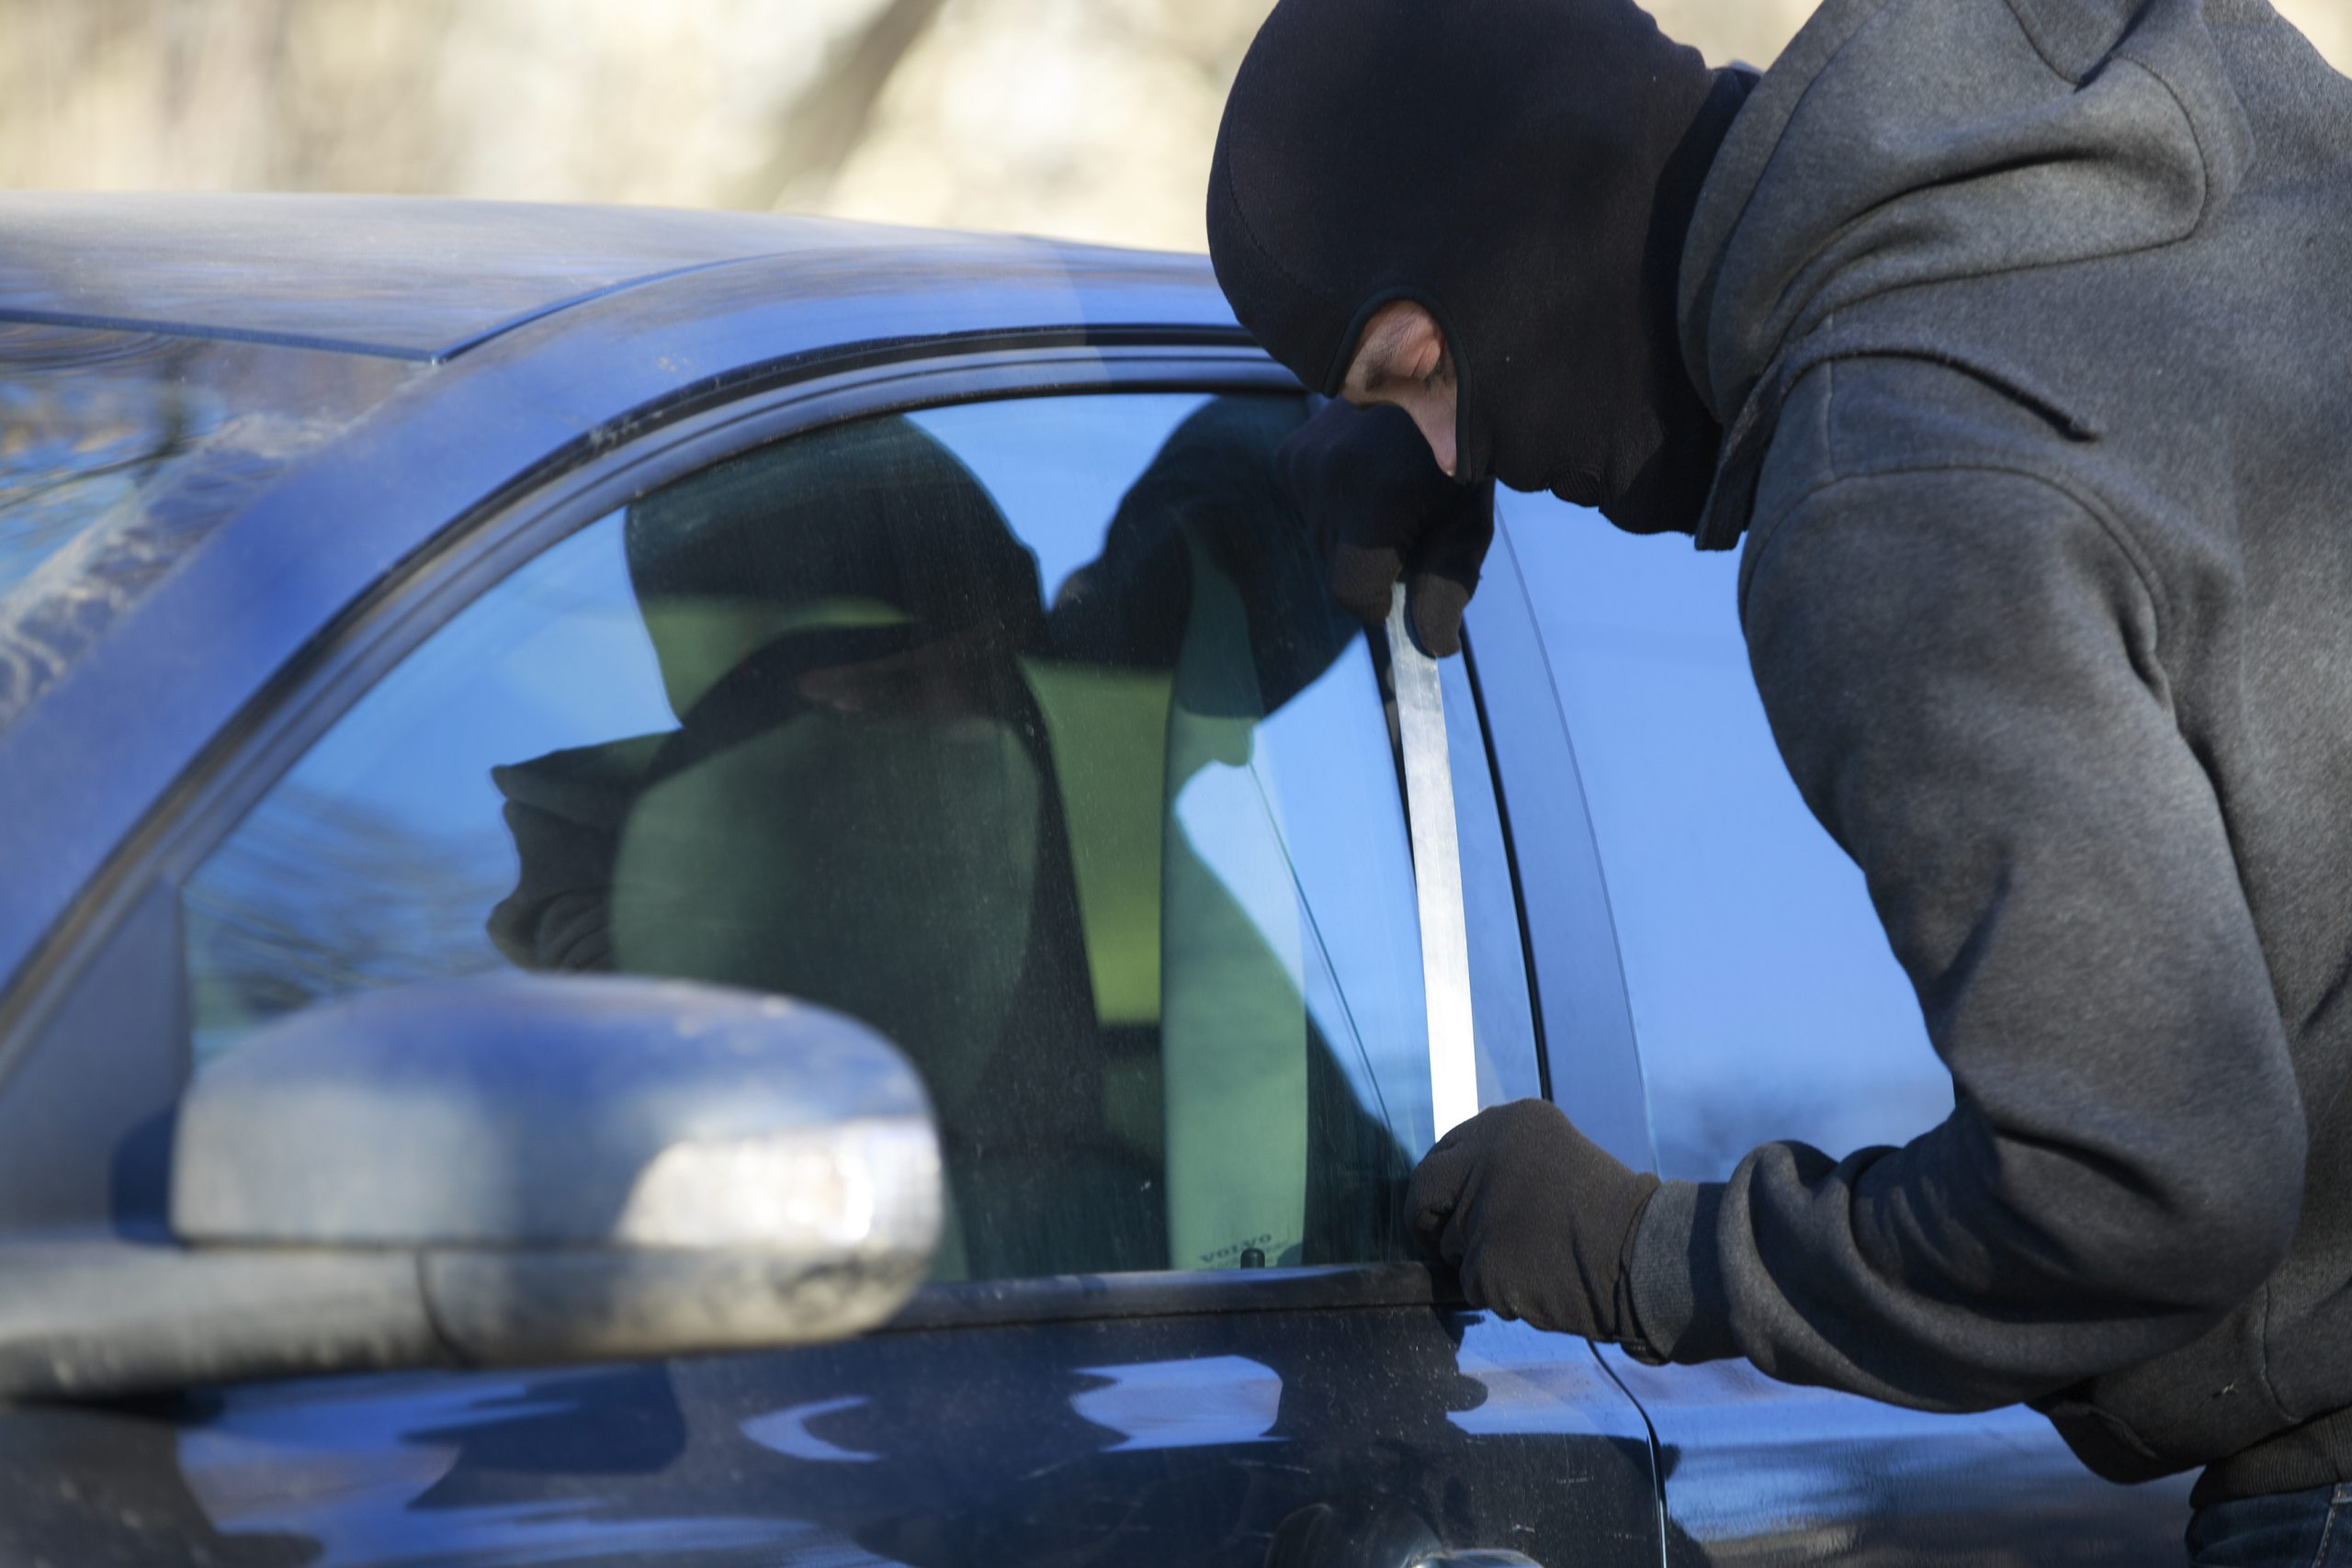 Thieves use tech to track and steal classic cars